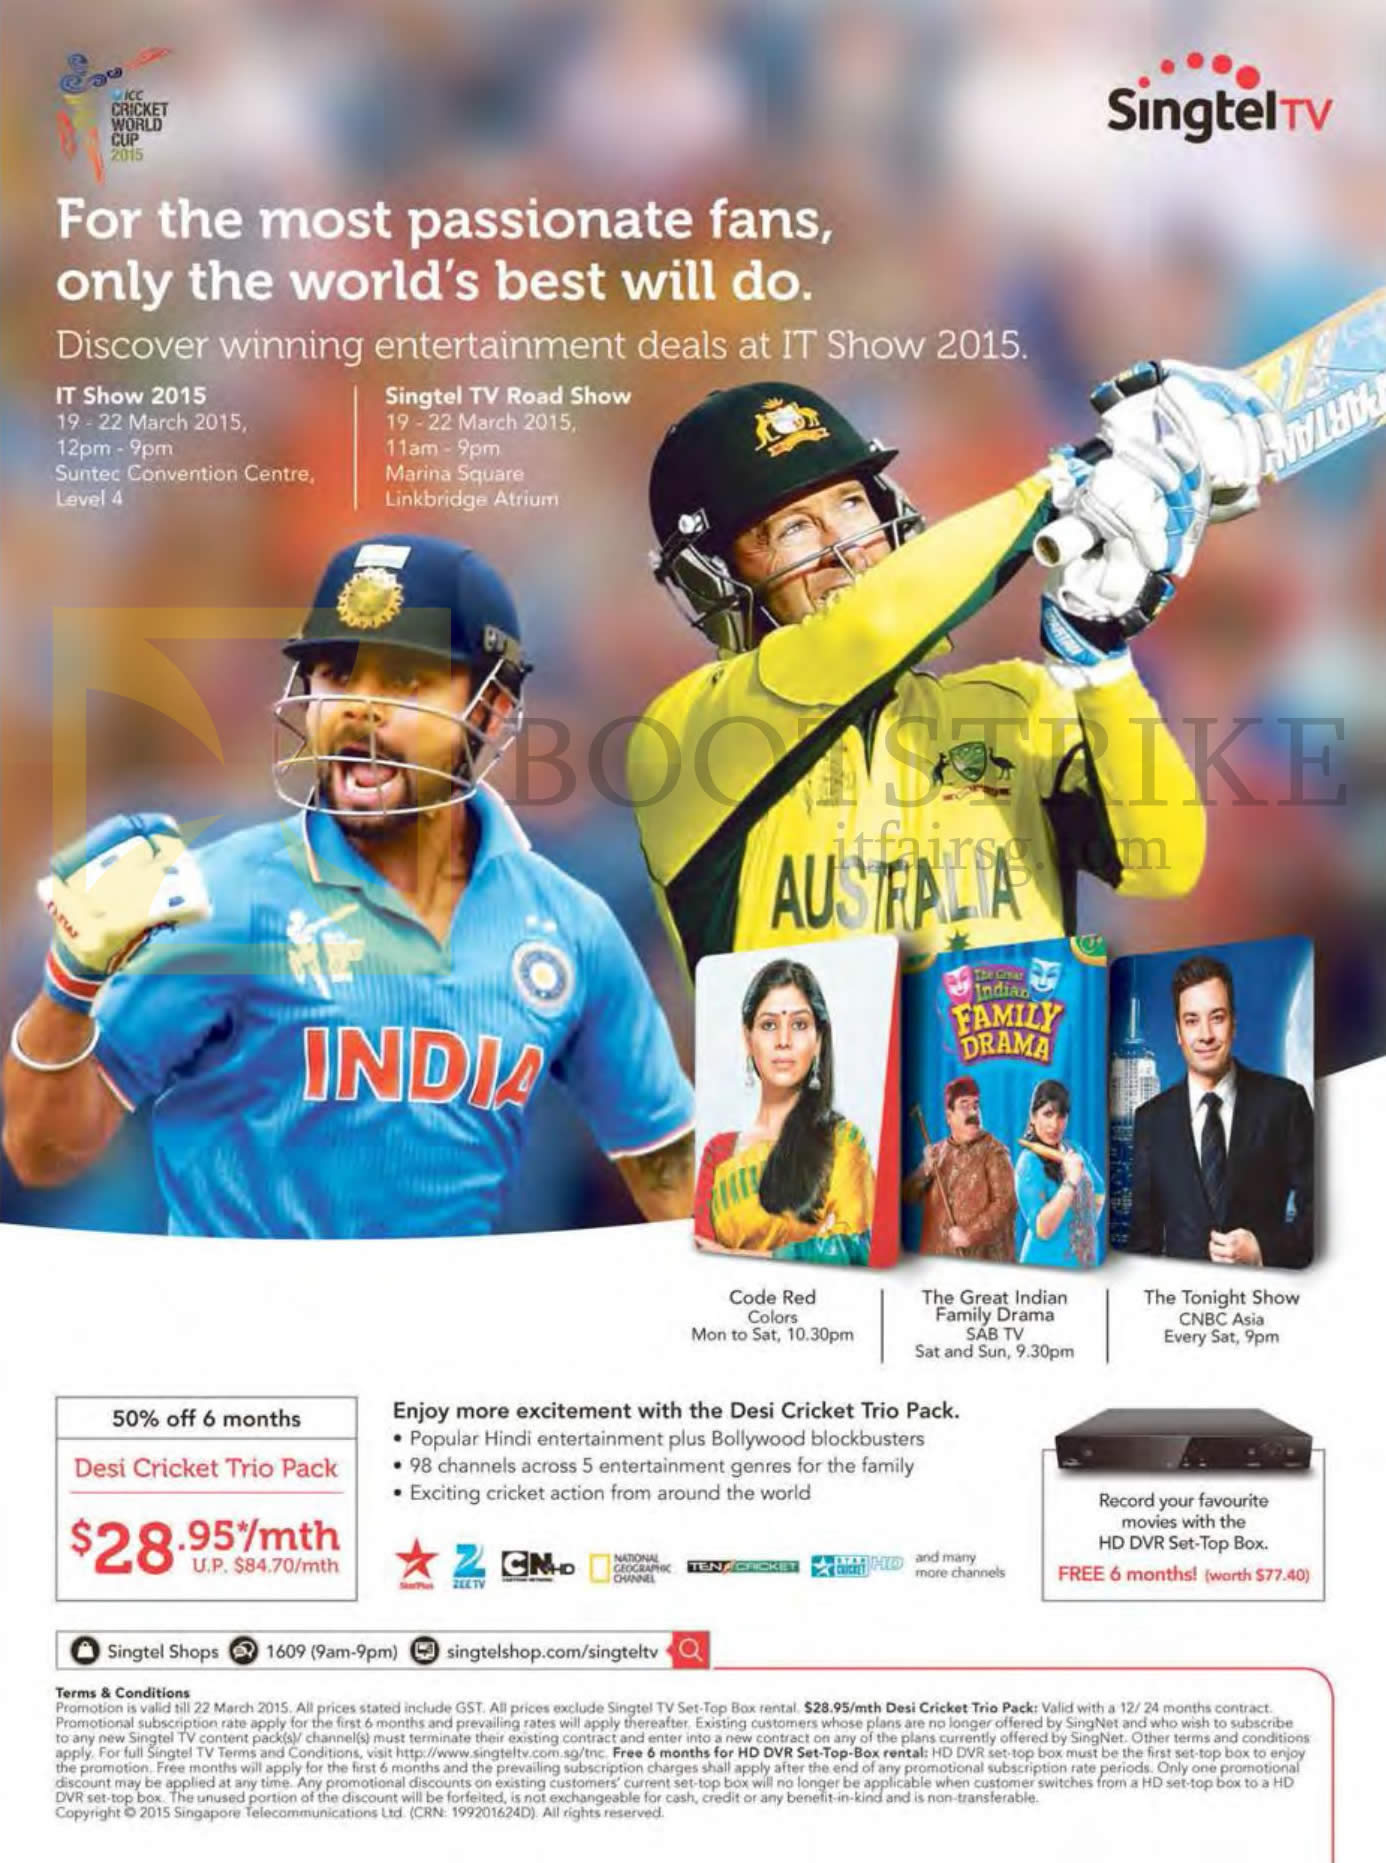 IT SHOW 2015 price list image brochure of Singtel Mio TV Desi Cricket Trio Pack